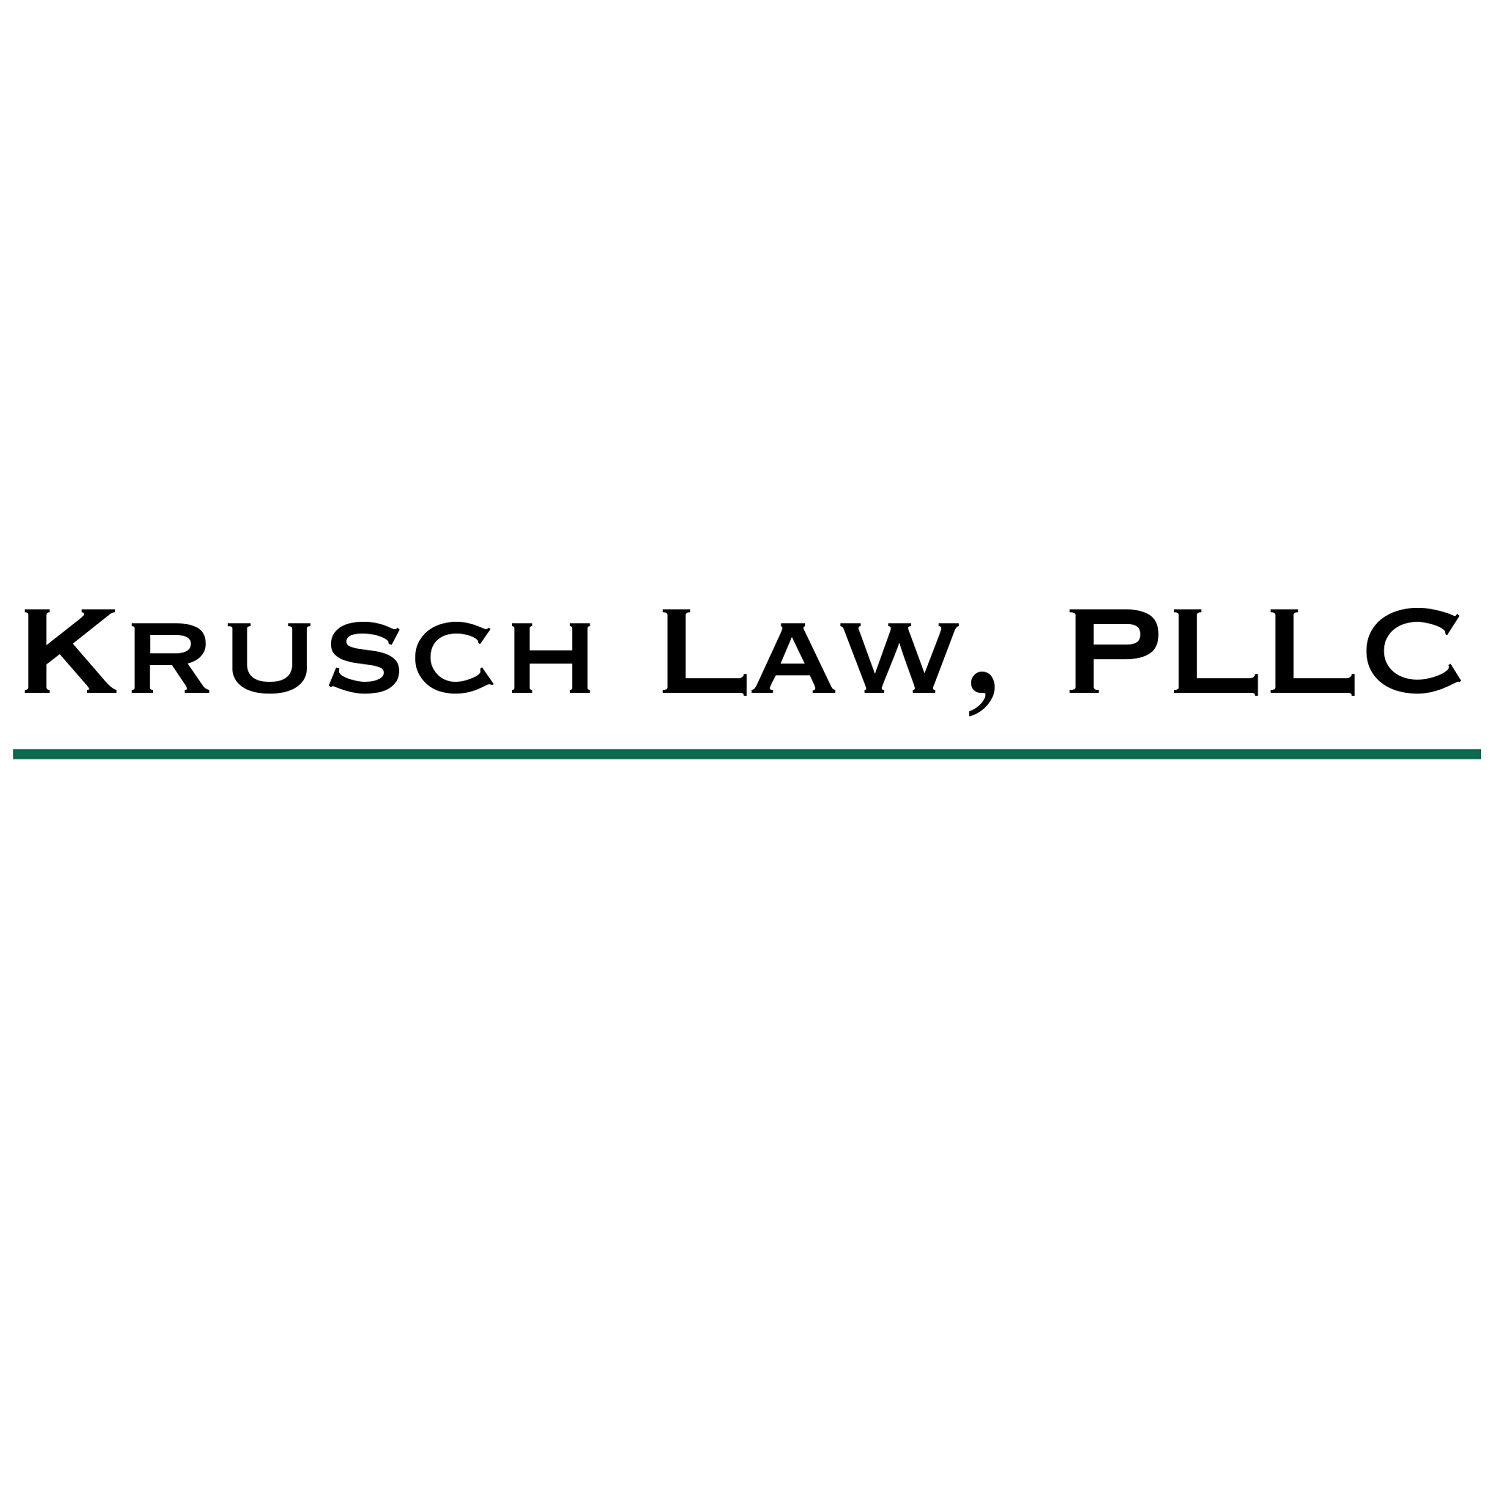 Krusch Law, PLLC